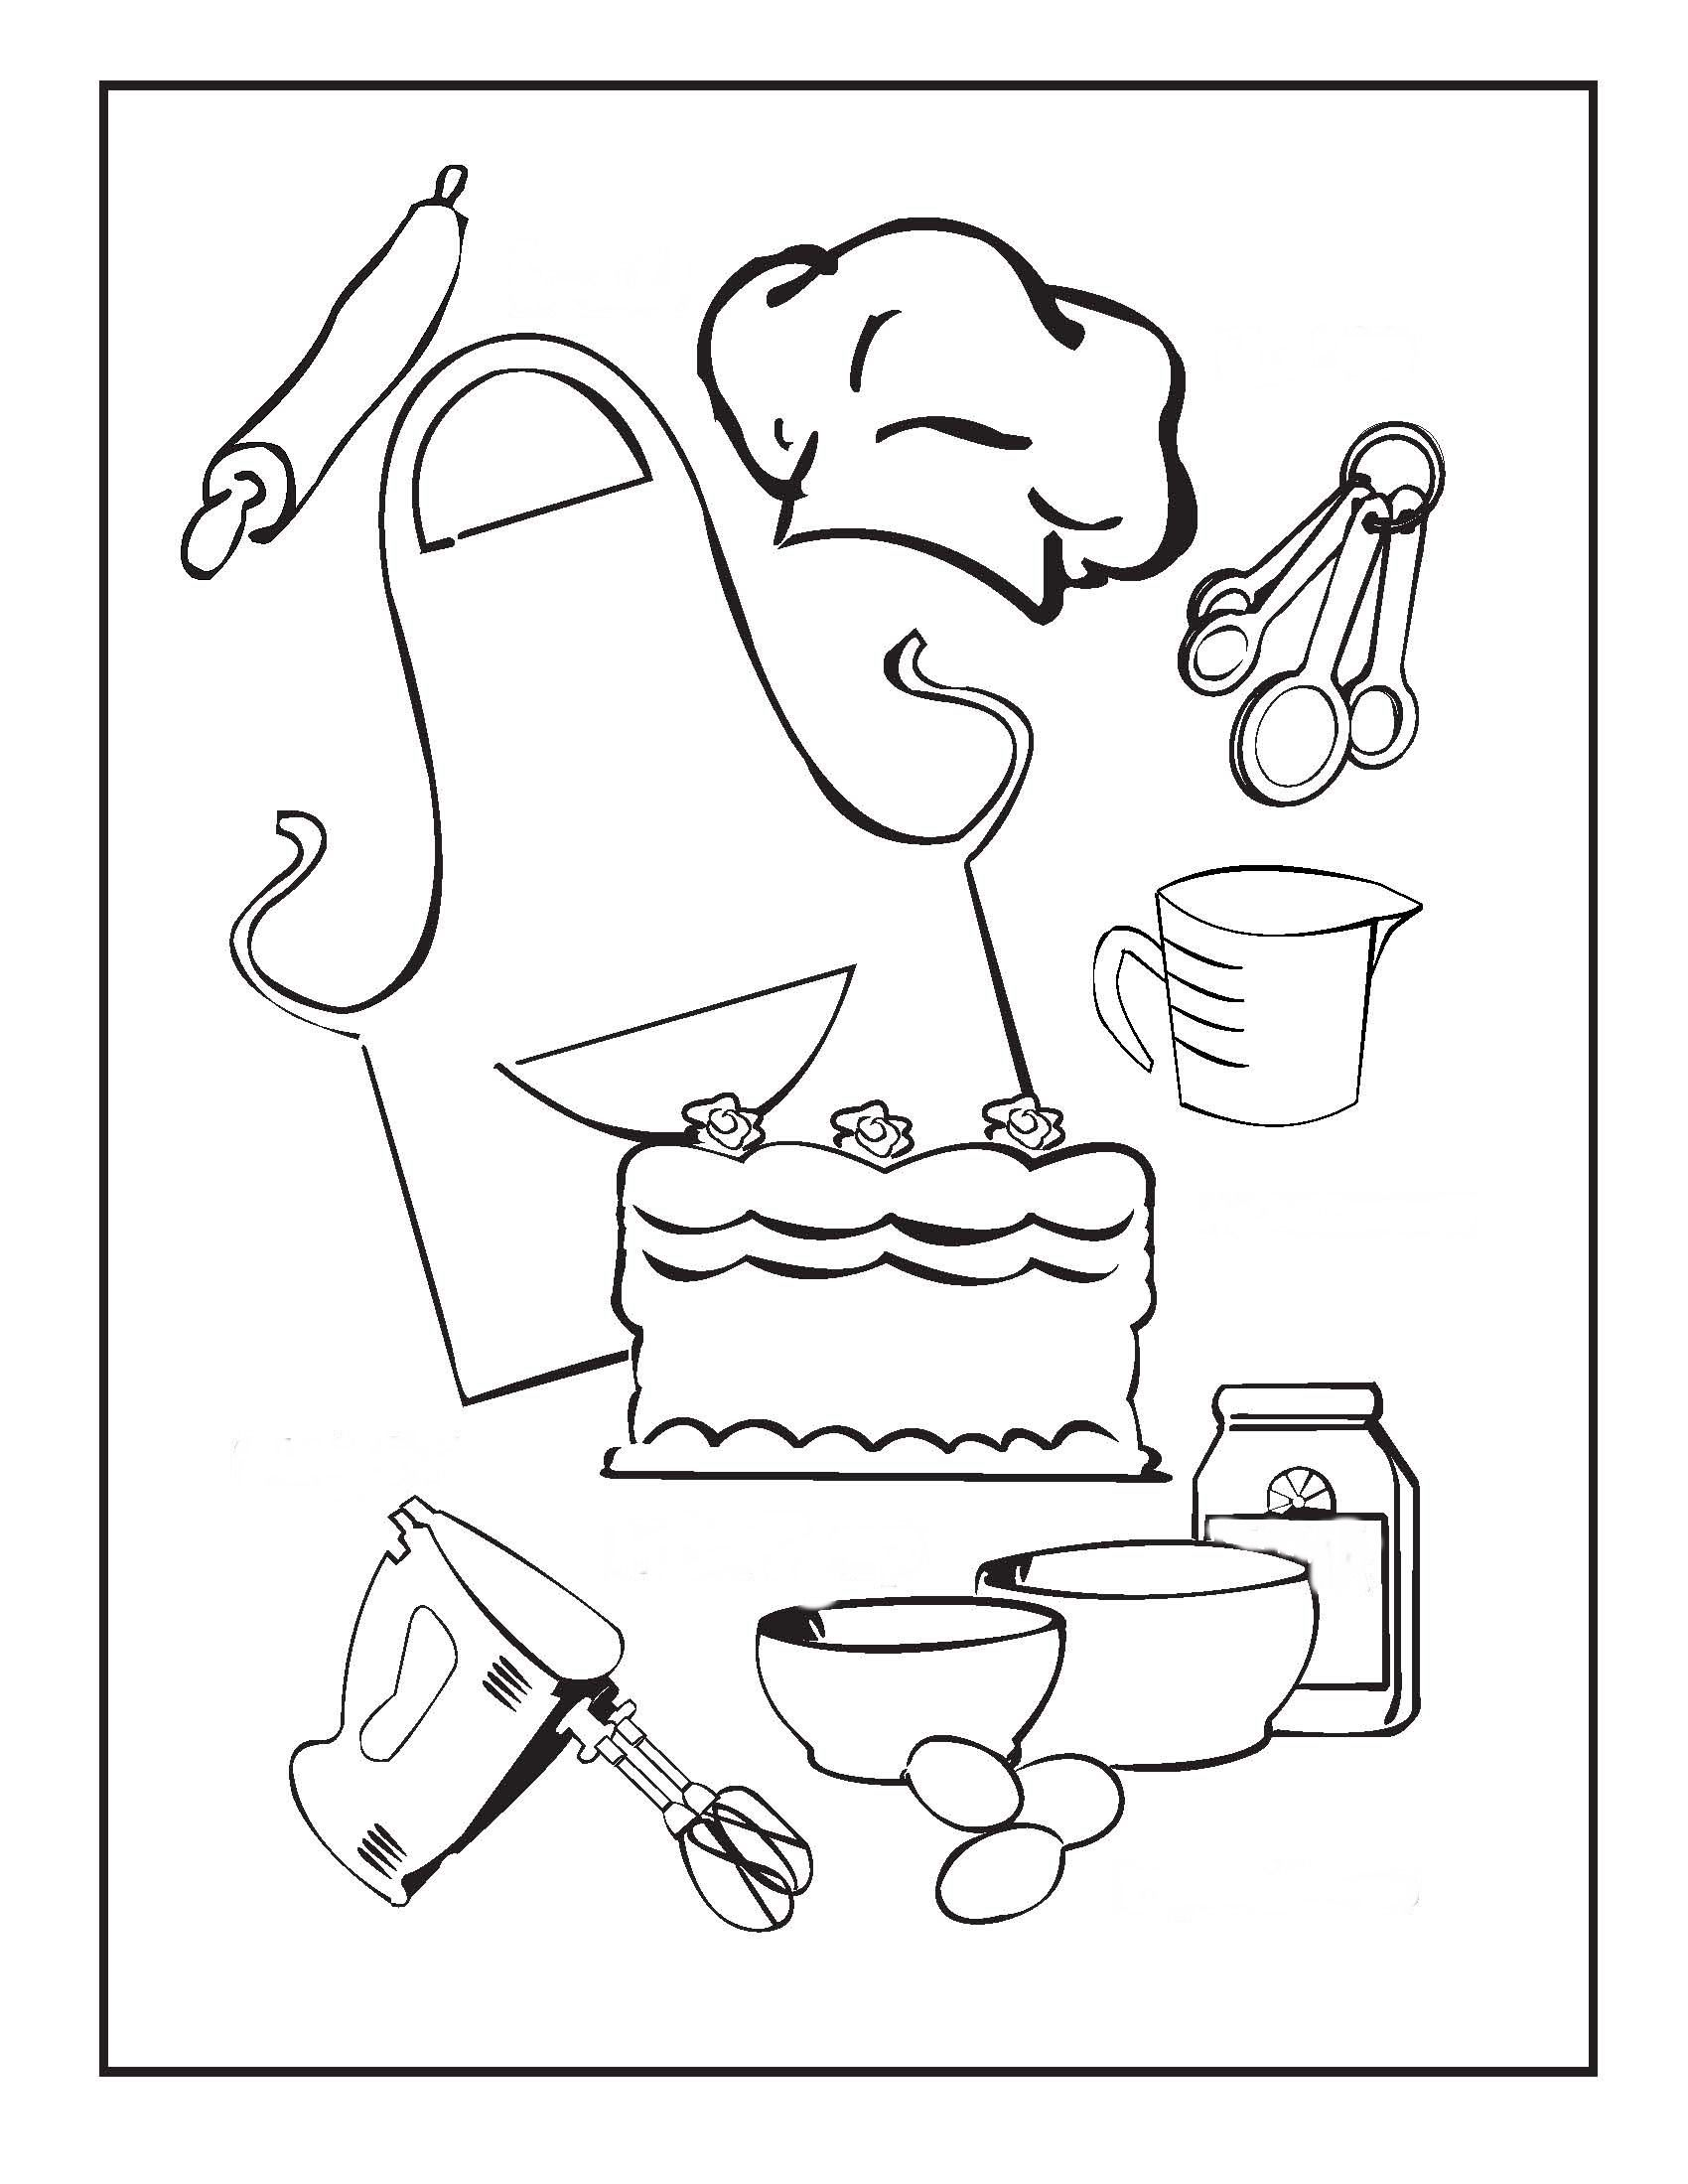 12 Baking ideas   coloring pages, coloring books, coloring pictures